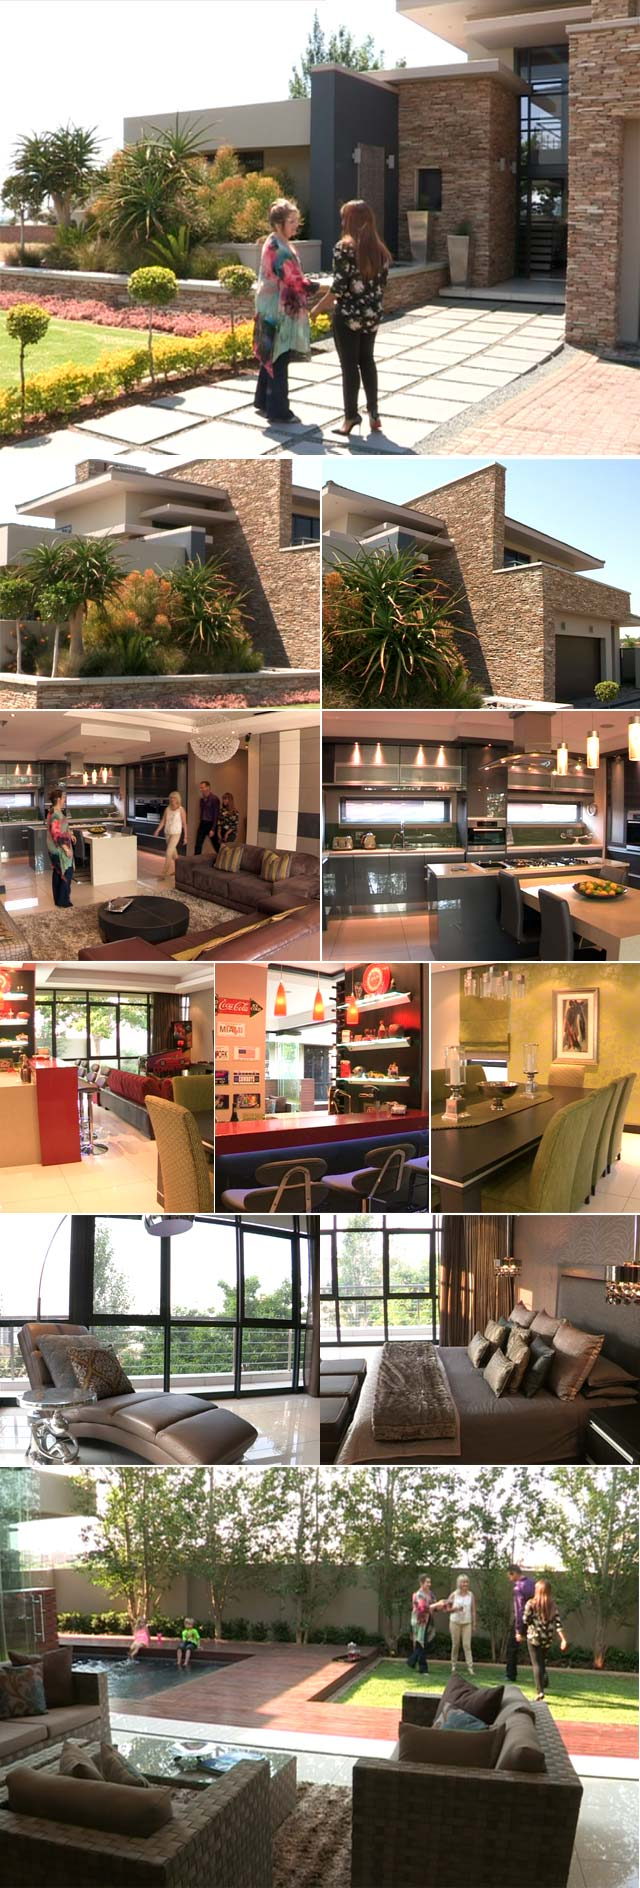 Top Billing features Pretoria location home